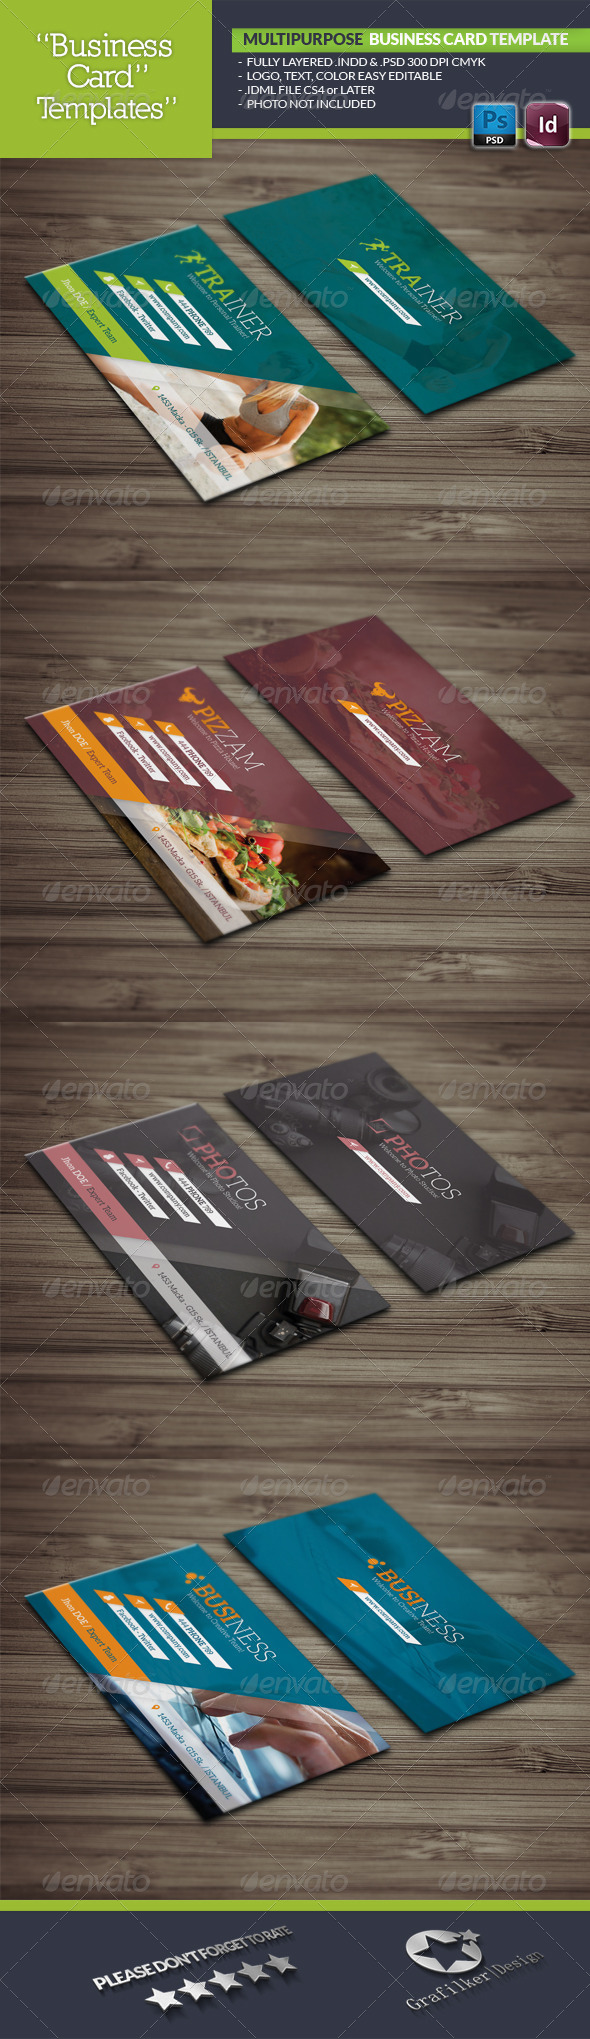 GraphicRiver Multipurpose Business Card Template 5882537